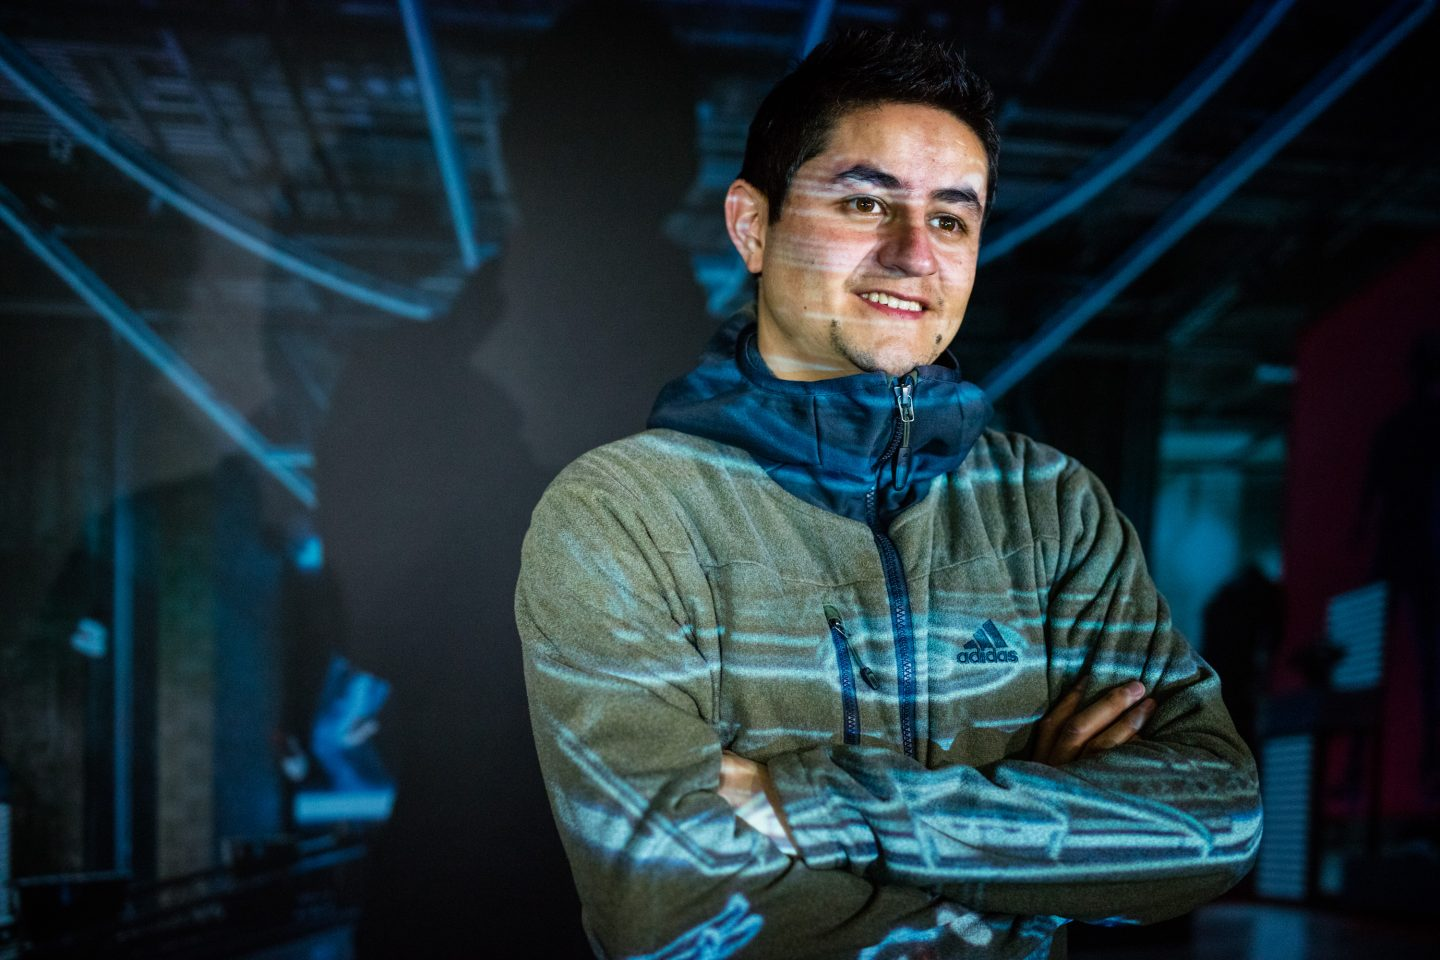 Man with crossed arms smiling with a projection behind him